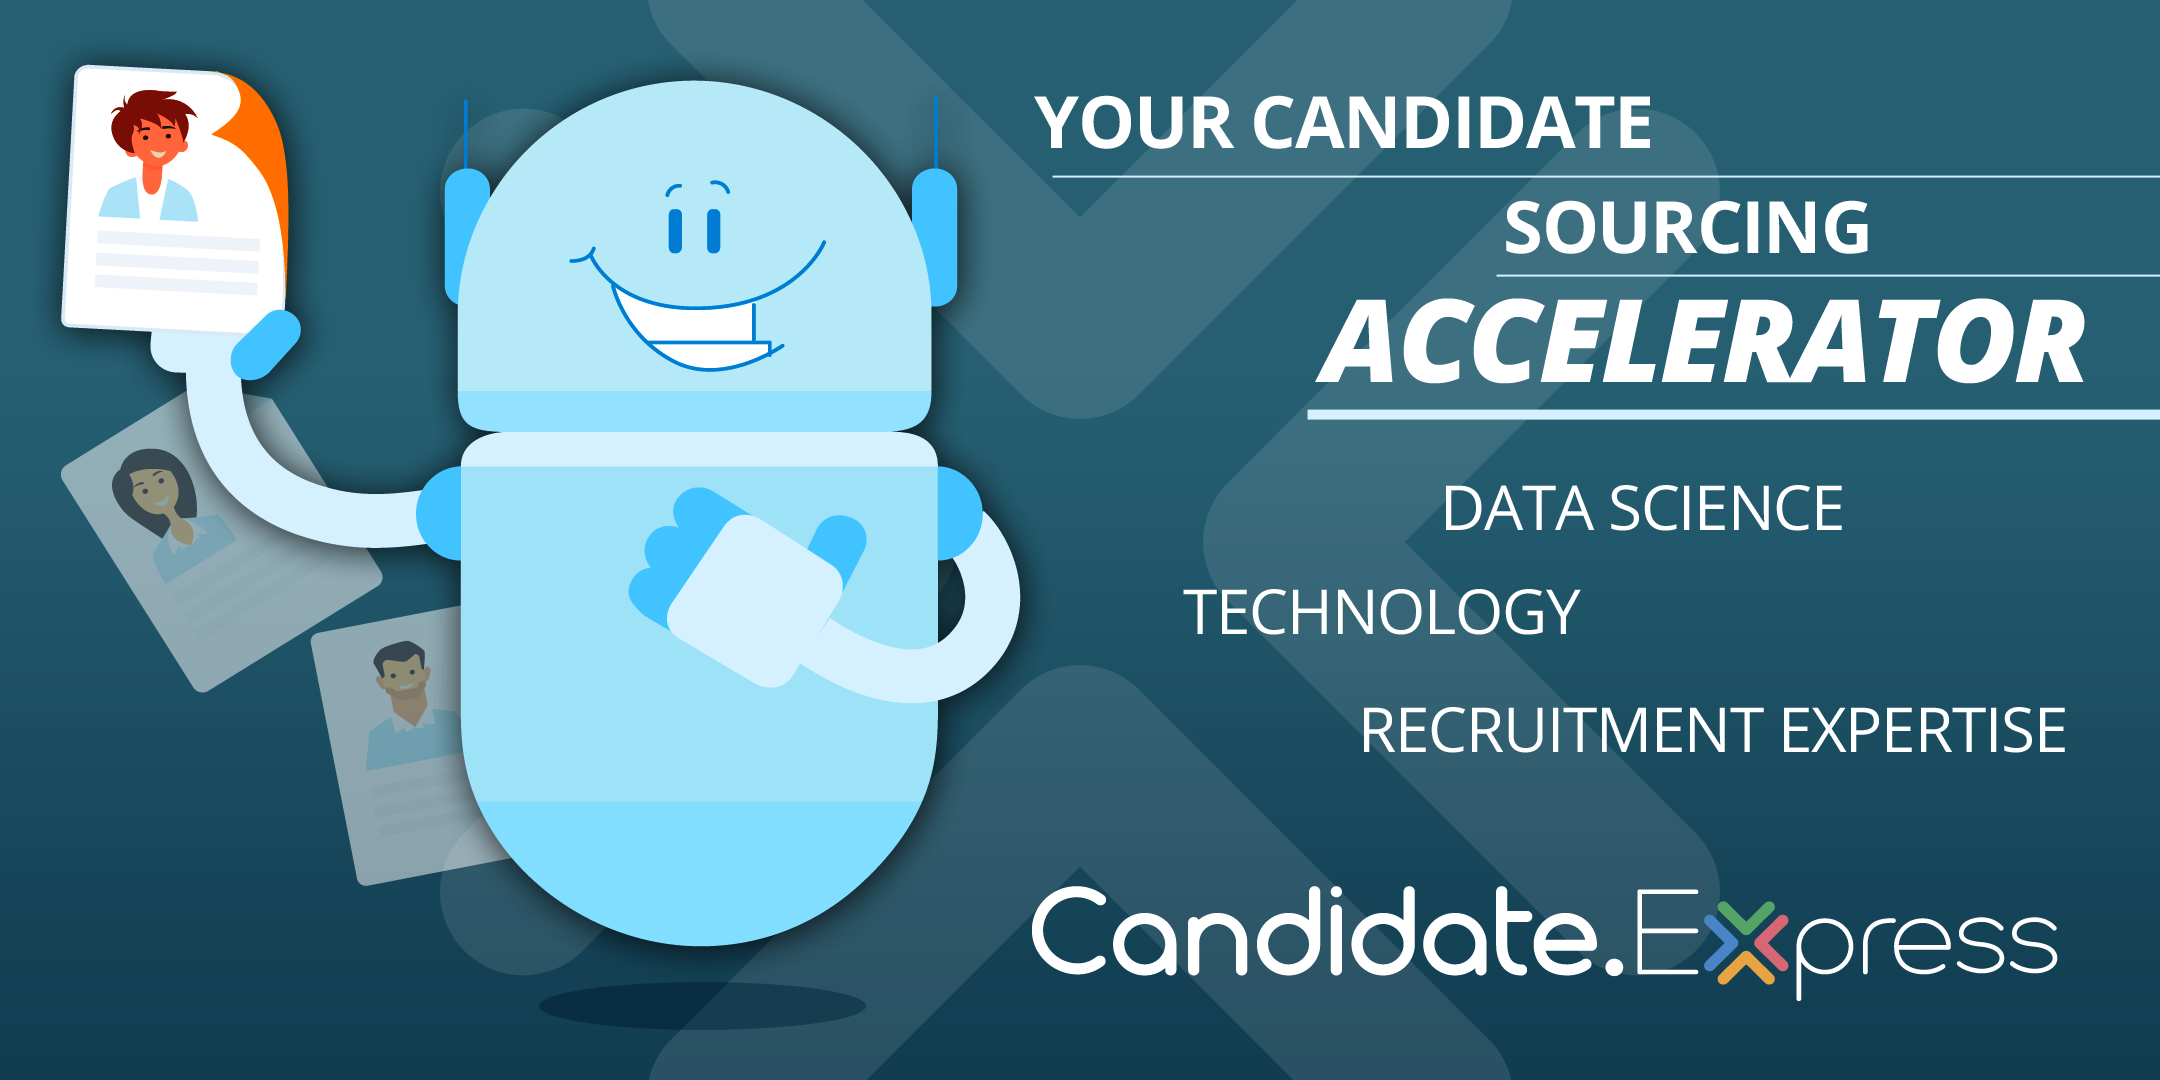 Candidate.Express - Your Candidate Sourcing Accelerator